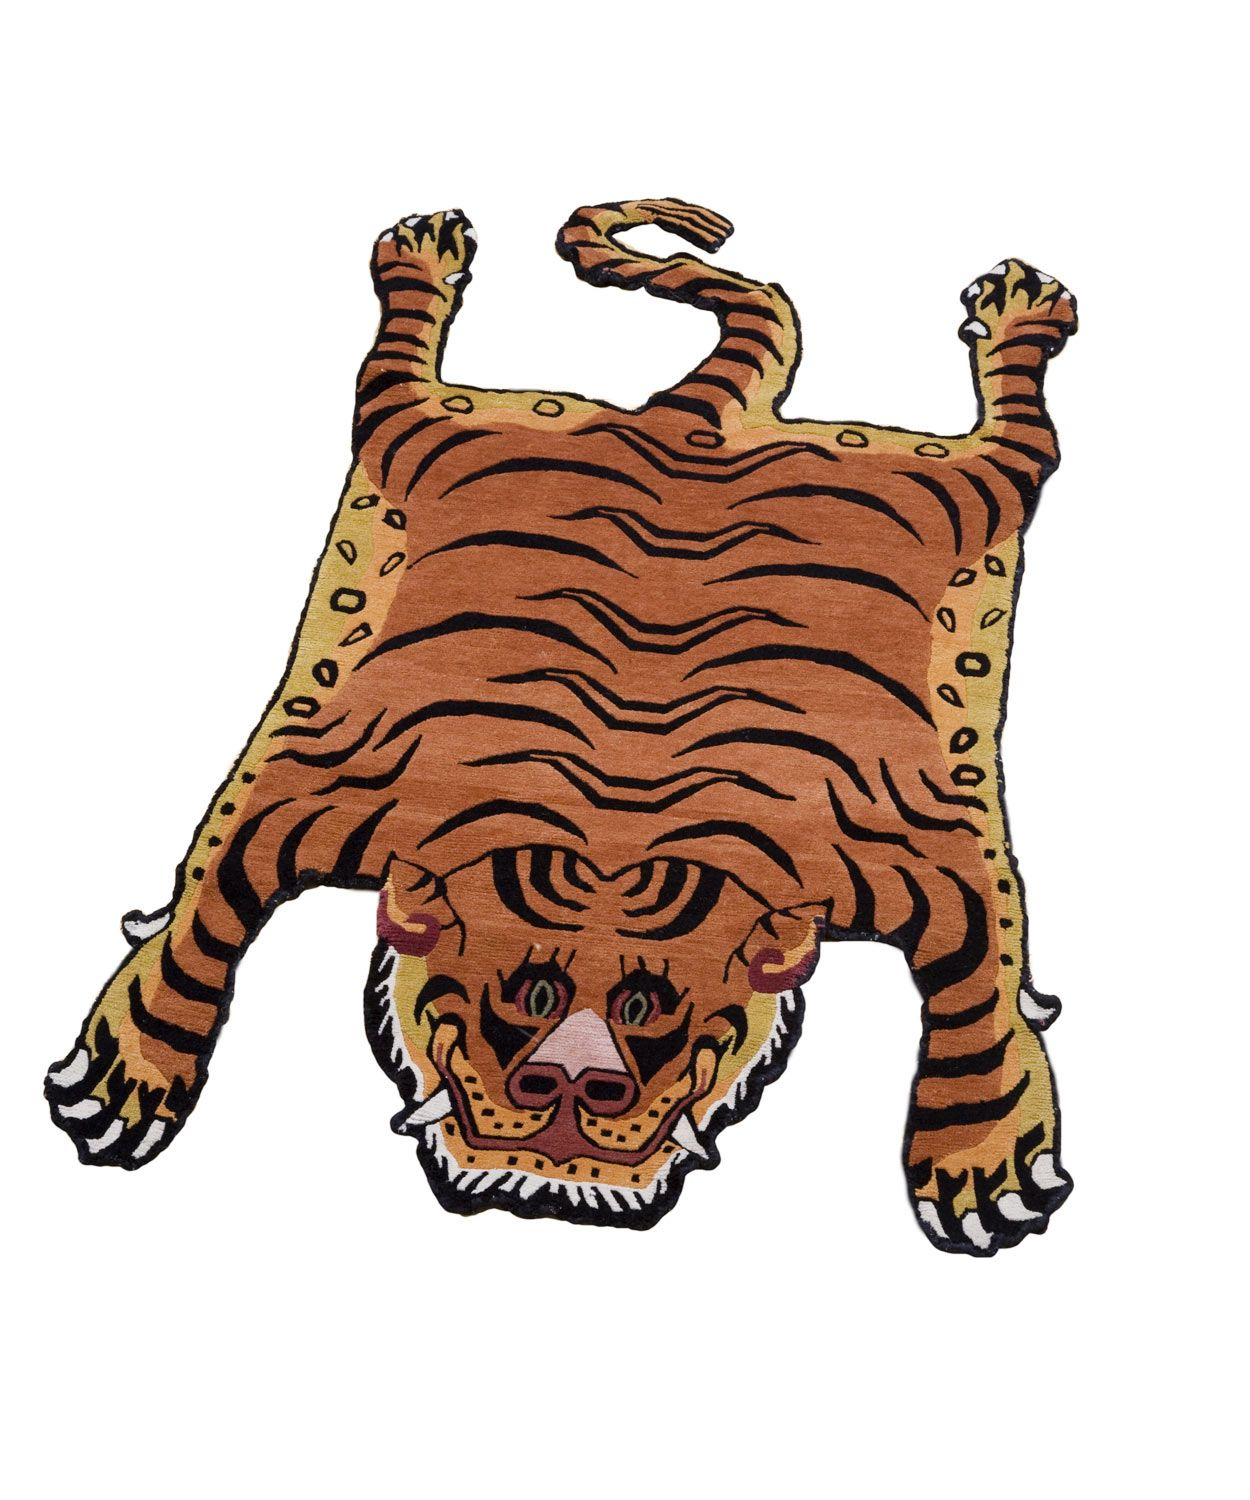 Tibetan Tiger (love Its Cartoonish Look) * Where I Stand